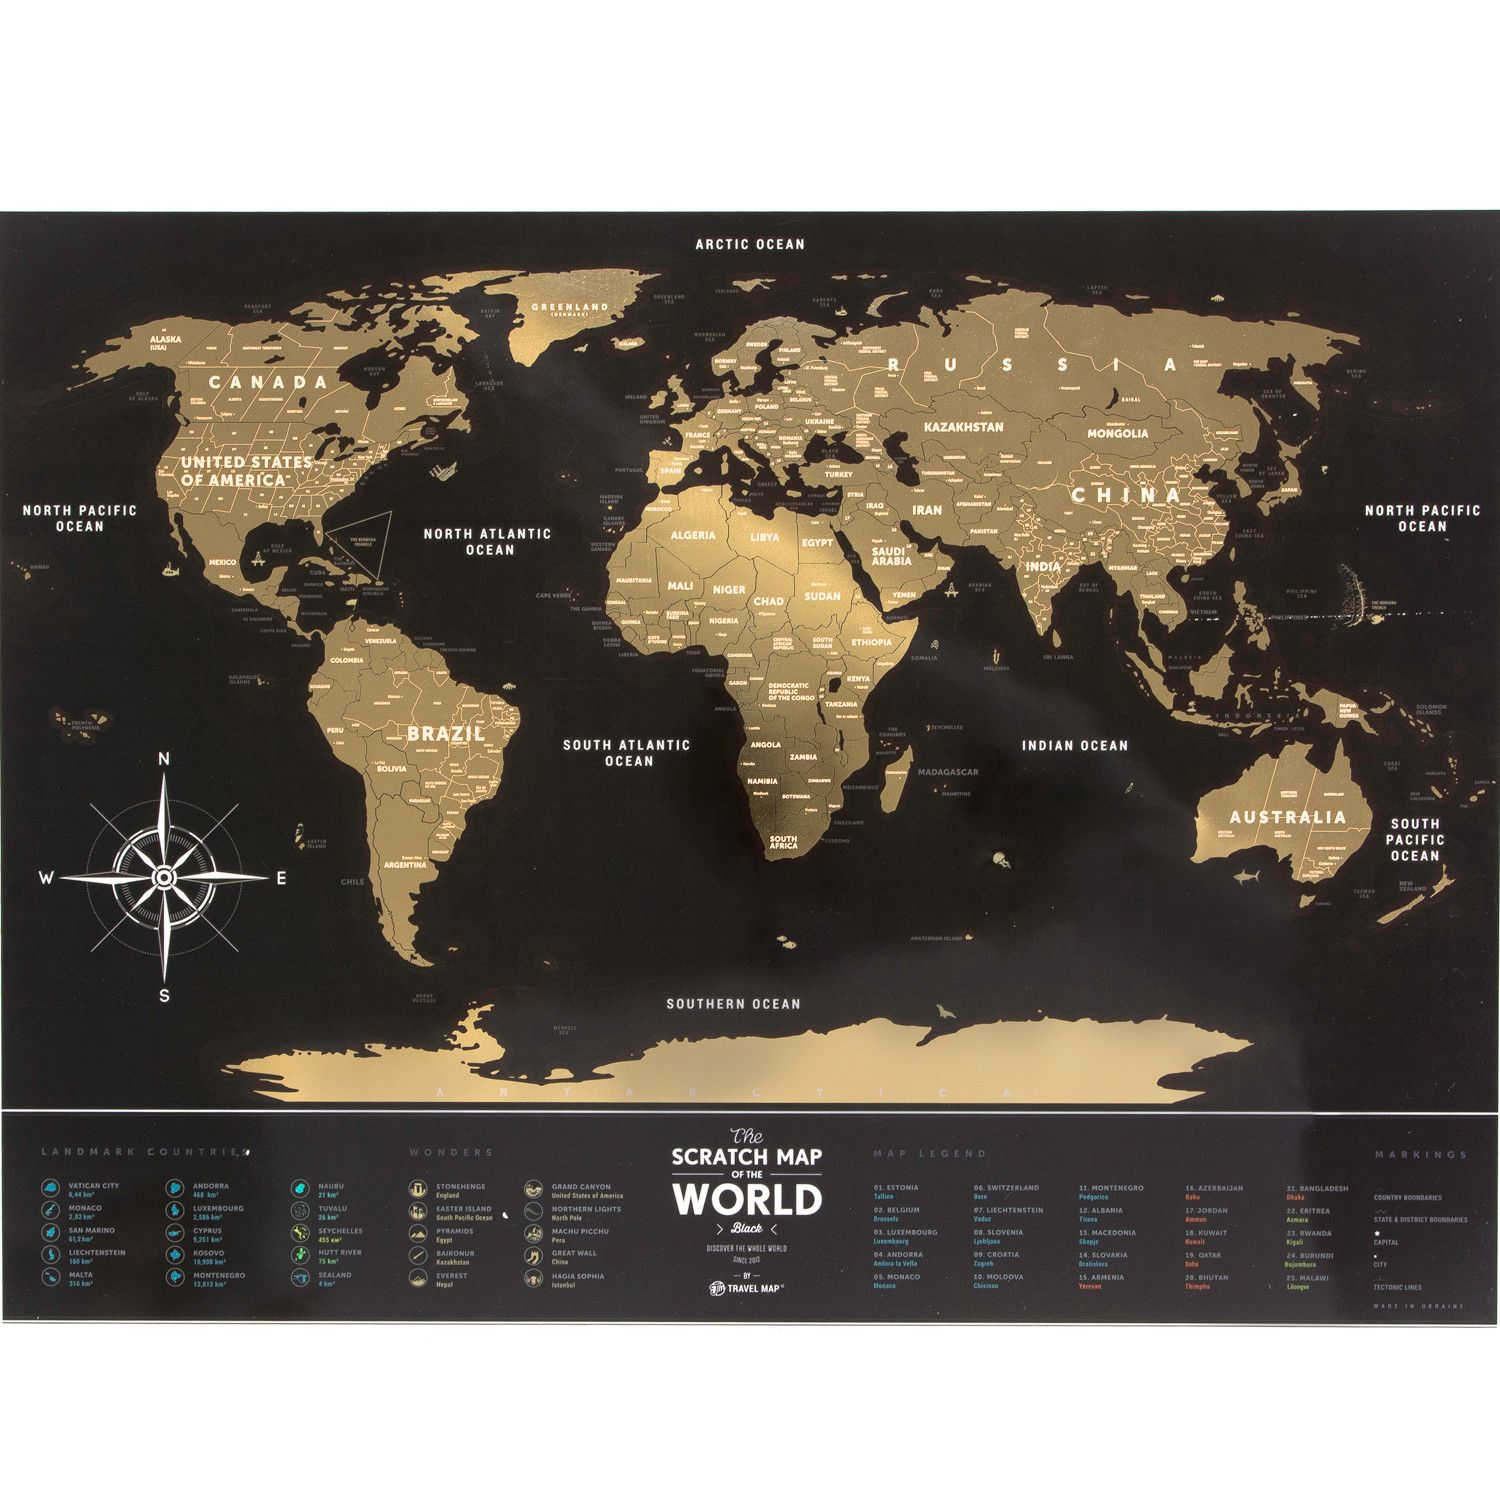 World scratch map black gold decoration pinterest world scratch map black gold gumiabroncs Image collections